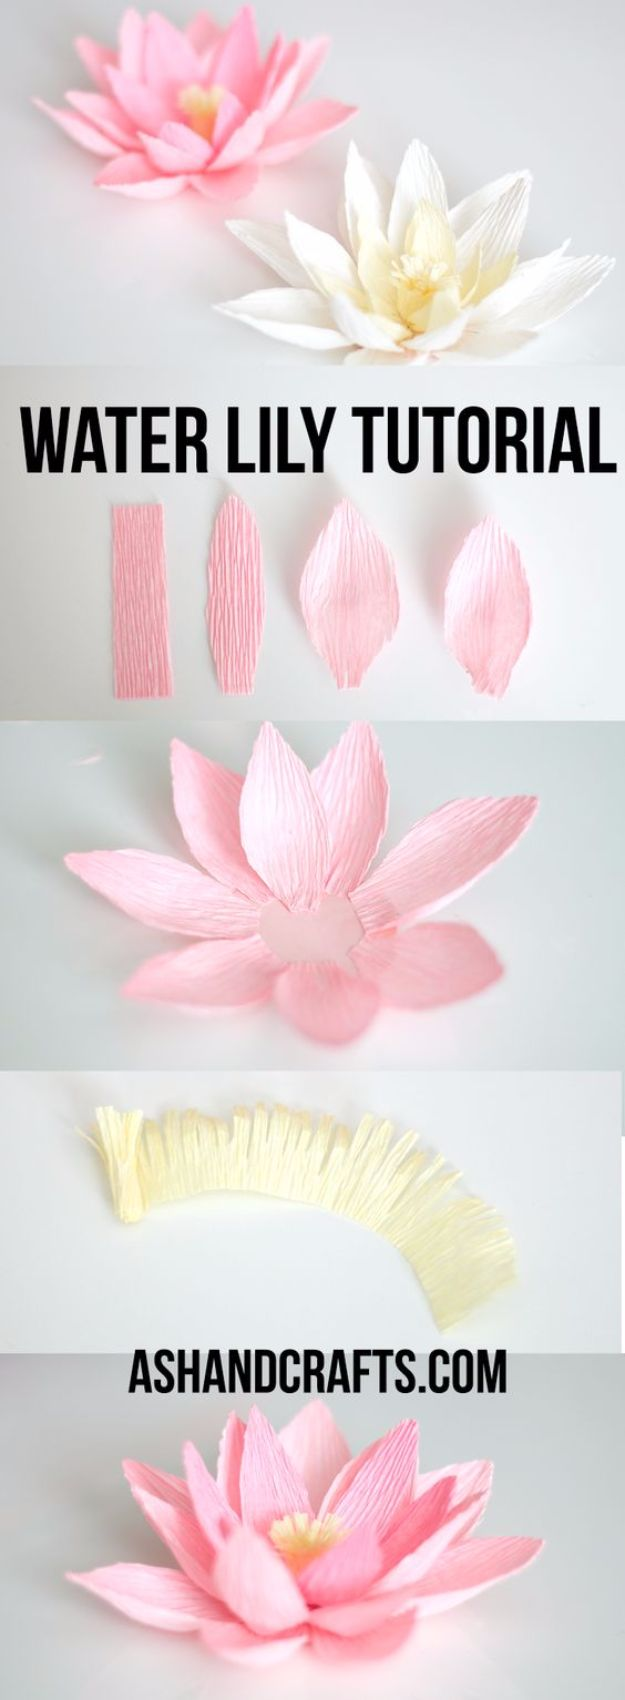 DIY Paper Flowers - Crepe Paper Water Lily - How To Make A Paper Flower - Large Wedding Backdrop for Wall Decor - Easy Tissue Paper Flower Tutorial for Kids - Giant Projects for Photo Backdrops - Daisy, Roses, Bouquets, Centerpieces - Cricut Template and Step by Step Tutorial